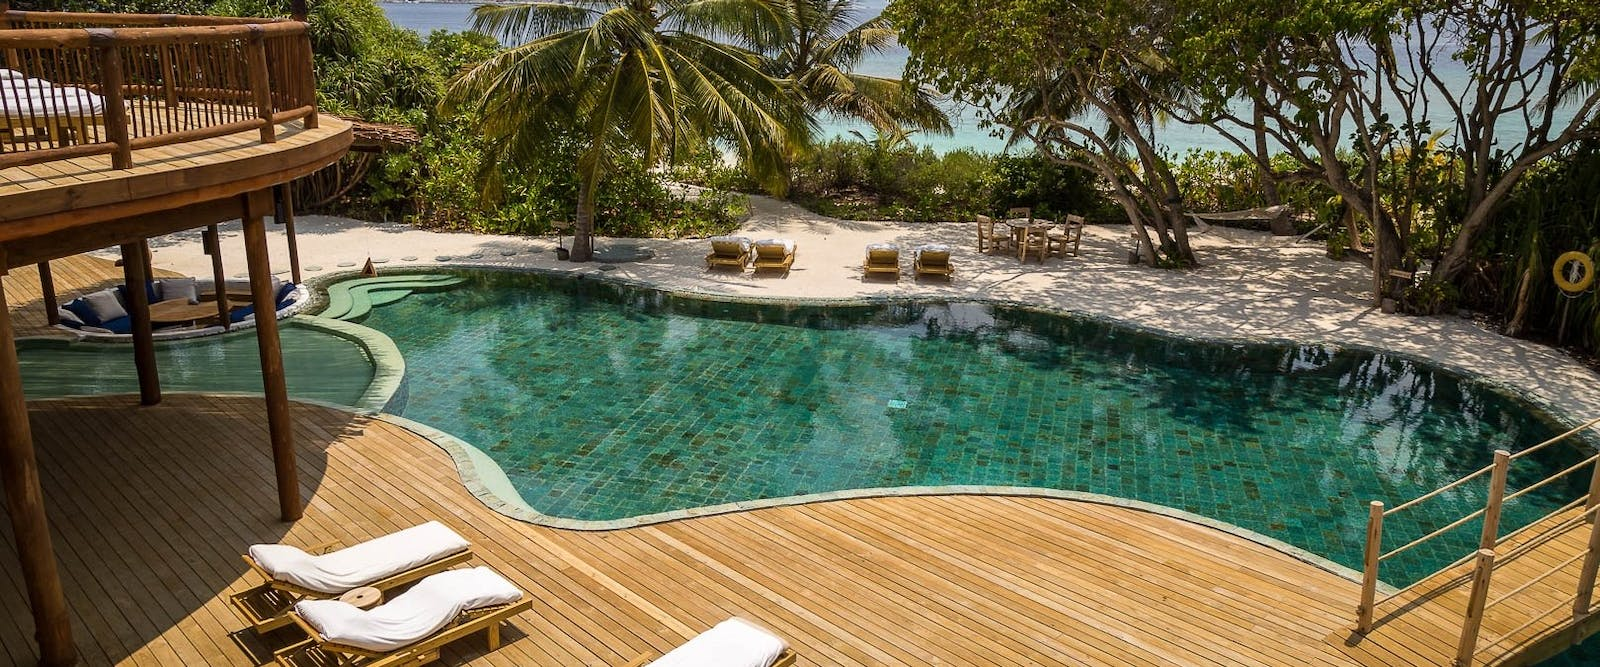 Private Pool in Villa 42 at Soneva Fushi, Maldives, Indian Ocean